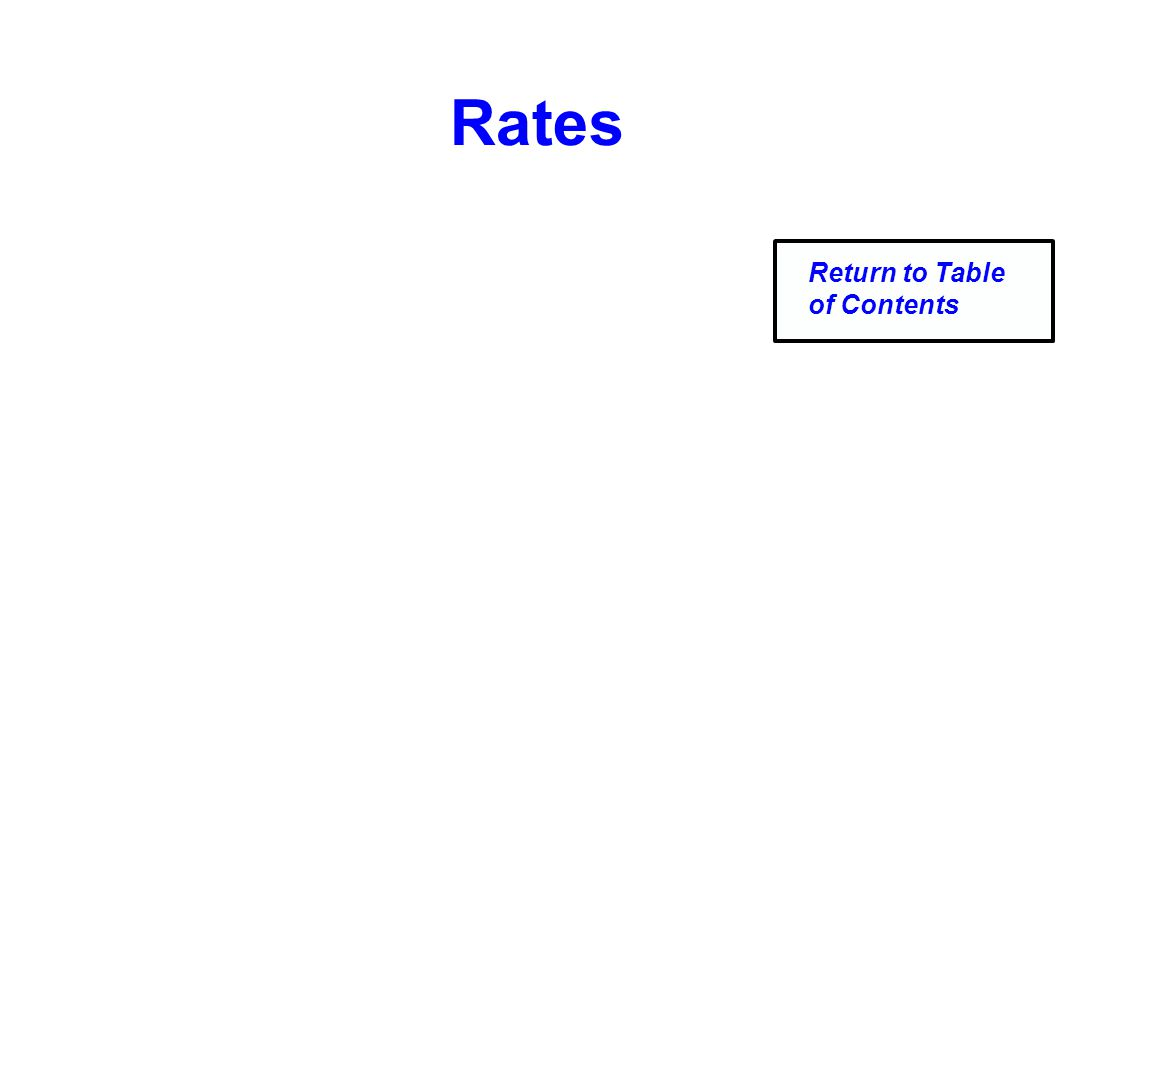 Rates Return to Table of Contents